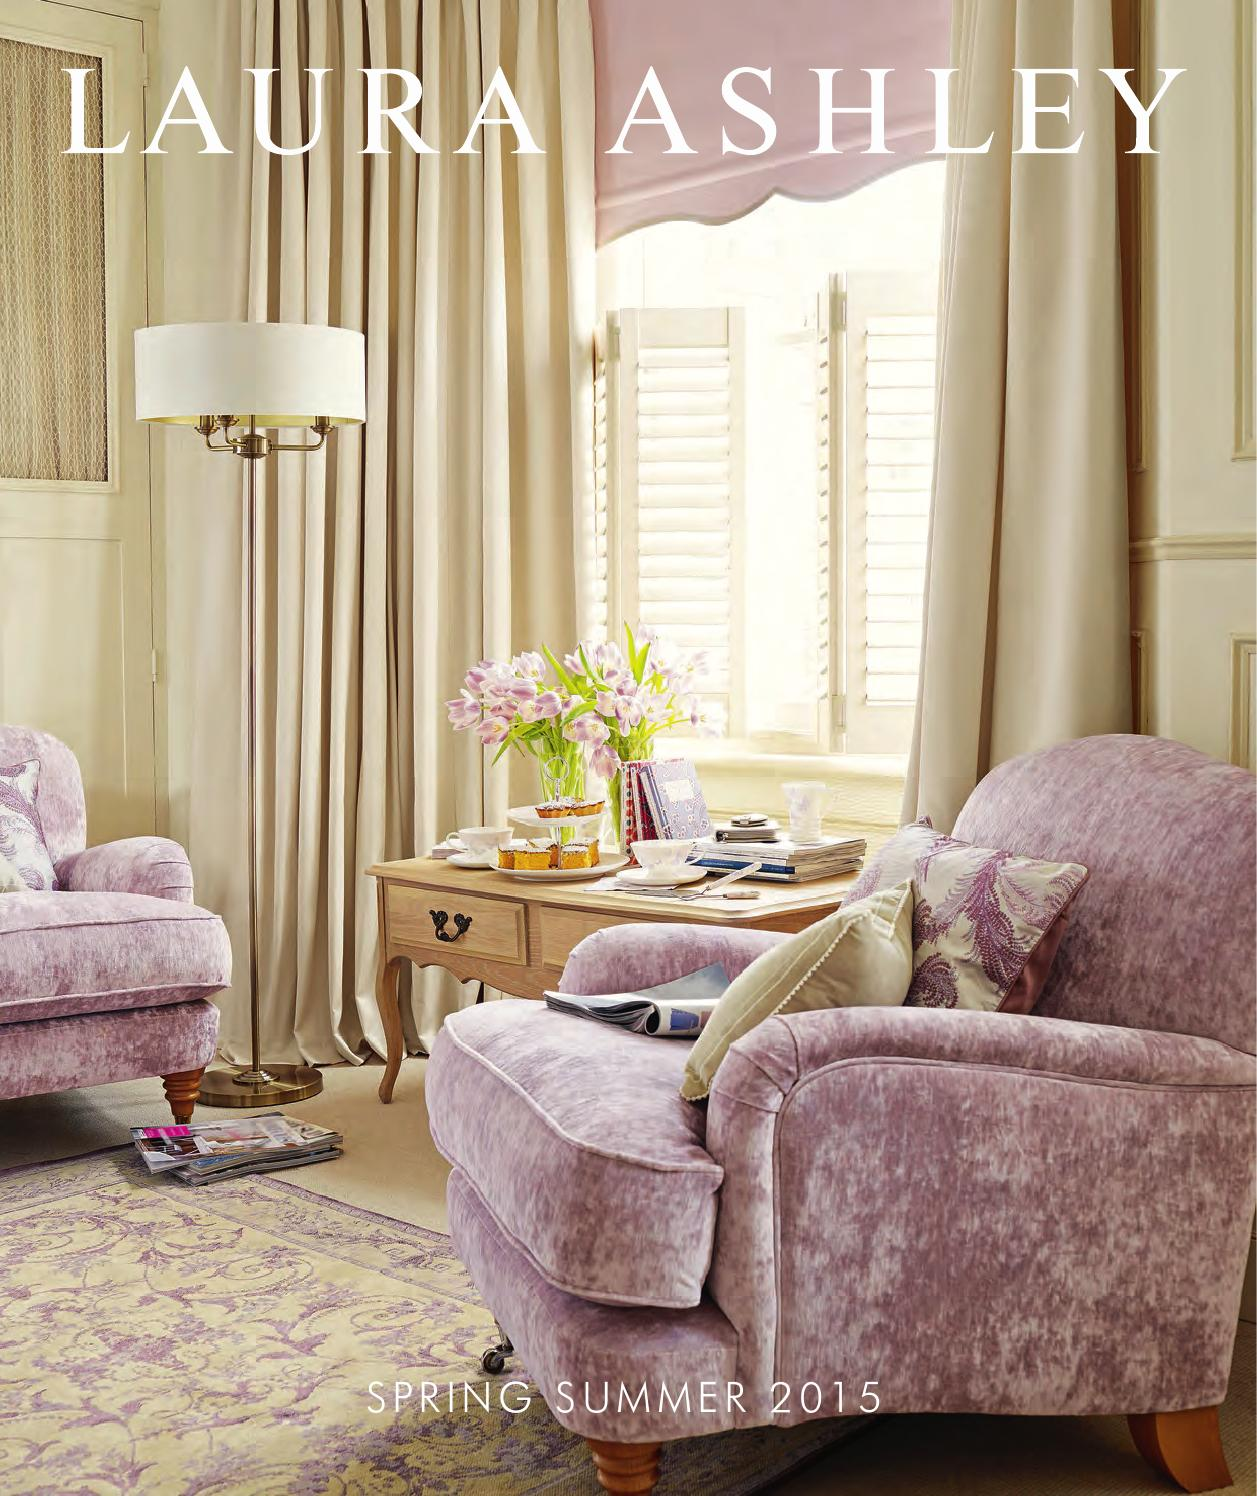 Laura ashley spring summer 2015 catalogue by stanislav for X furniture catalogue